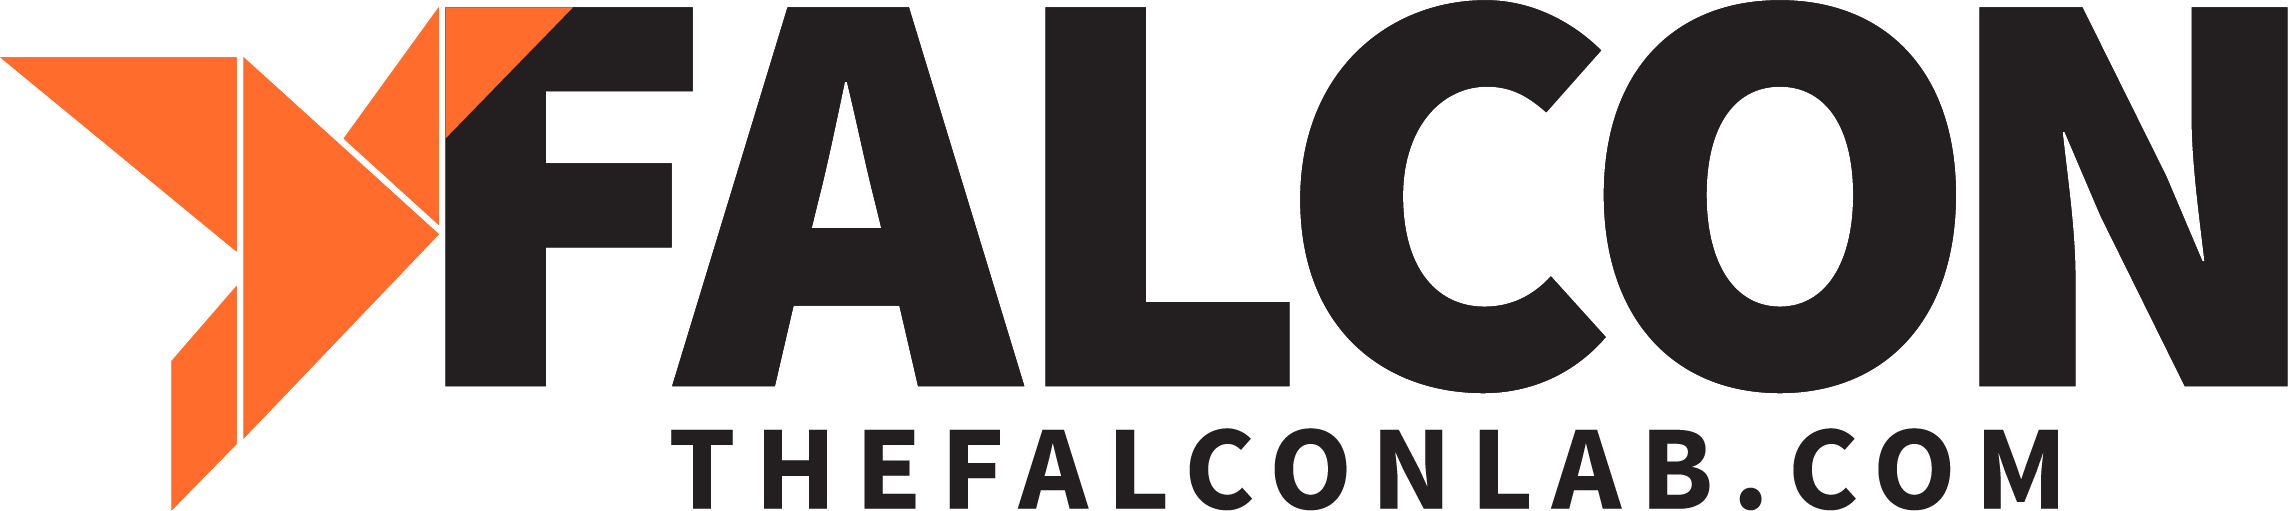 The Falcon Lab